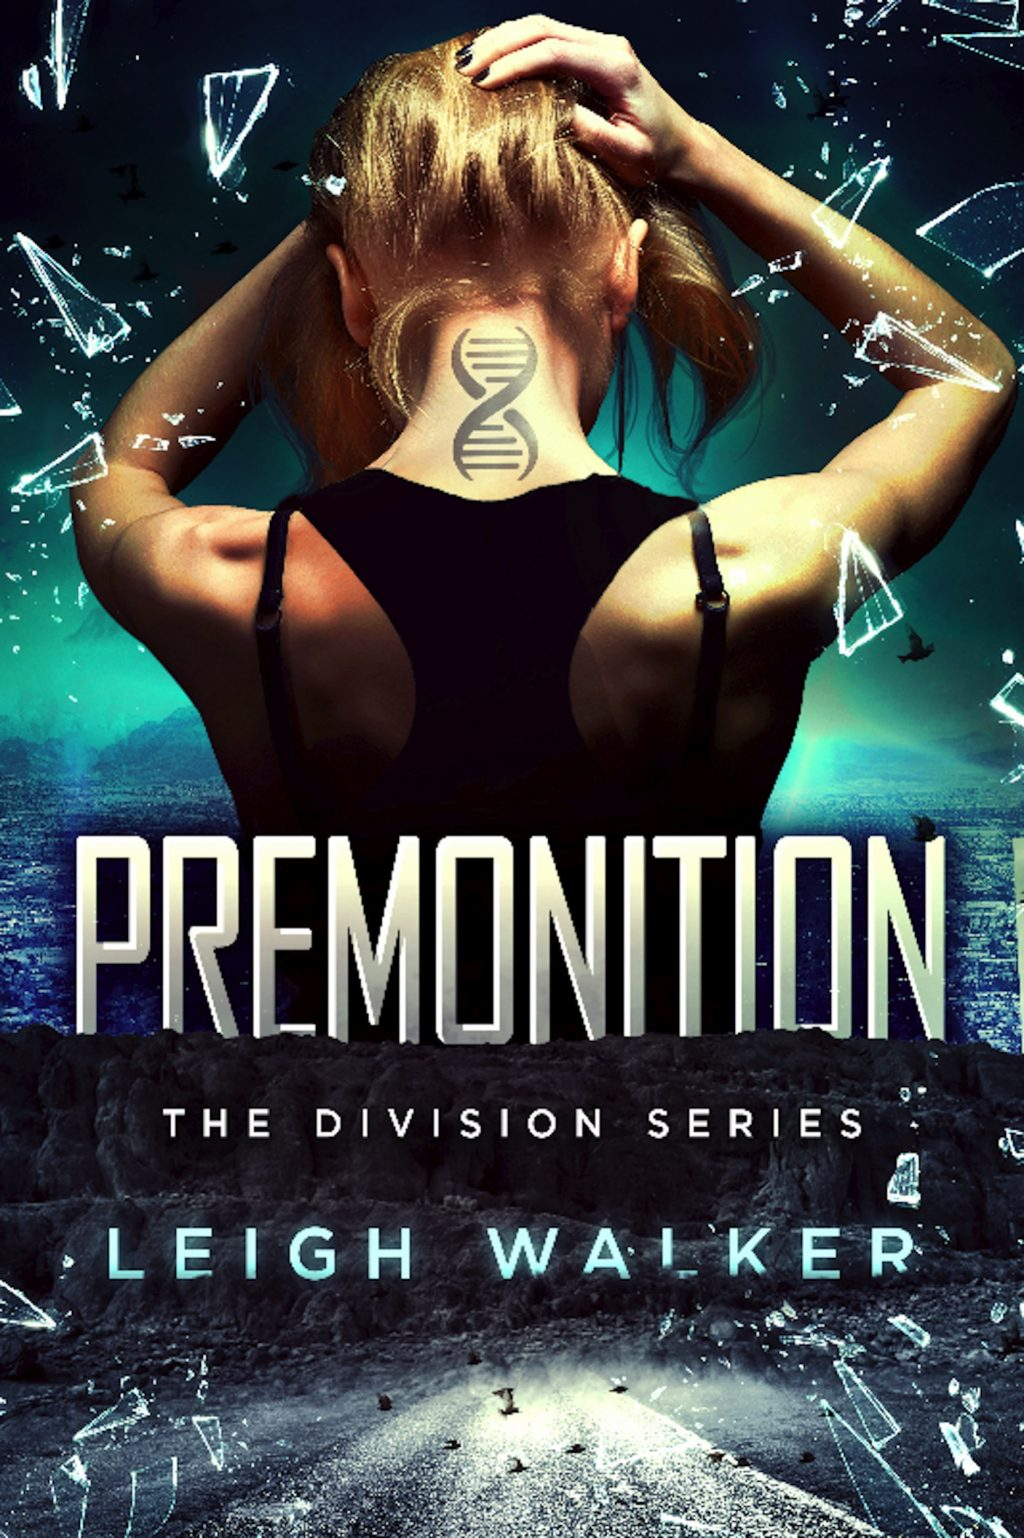 Premonition (The Division Series #1) by Leigh Walker